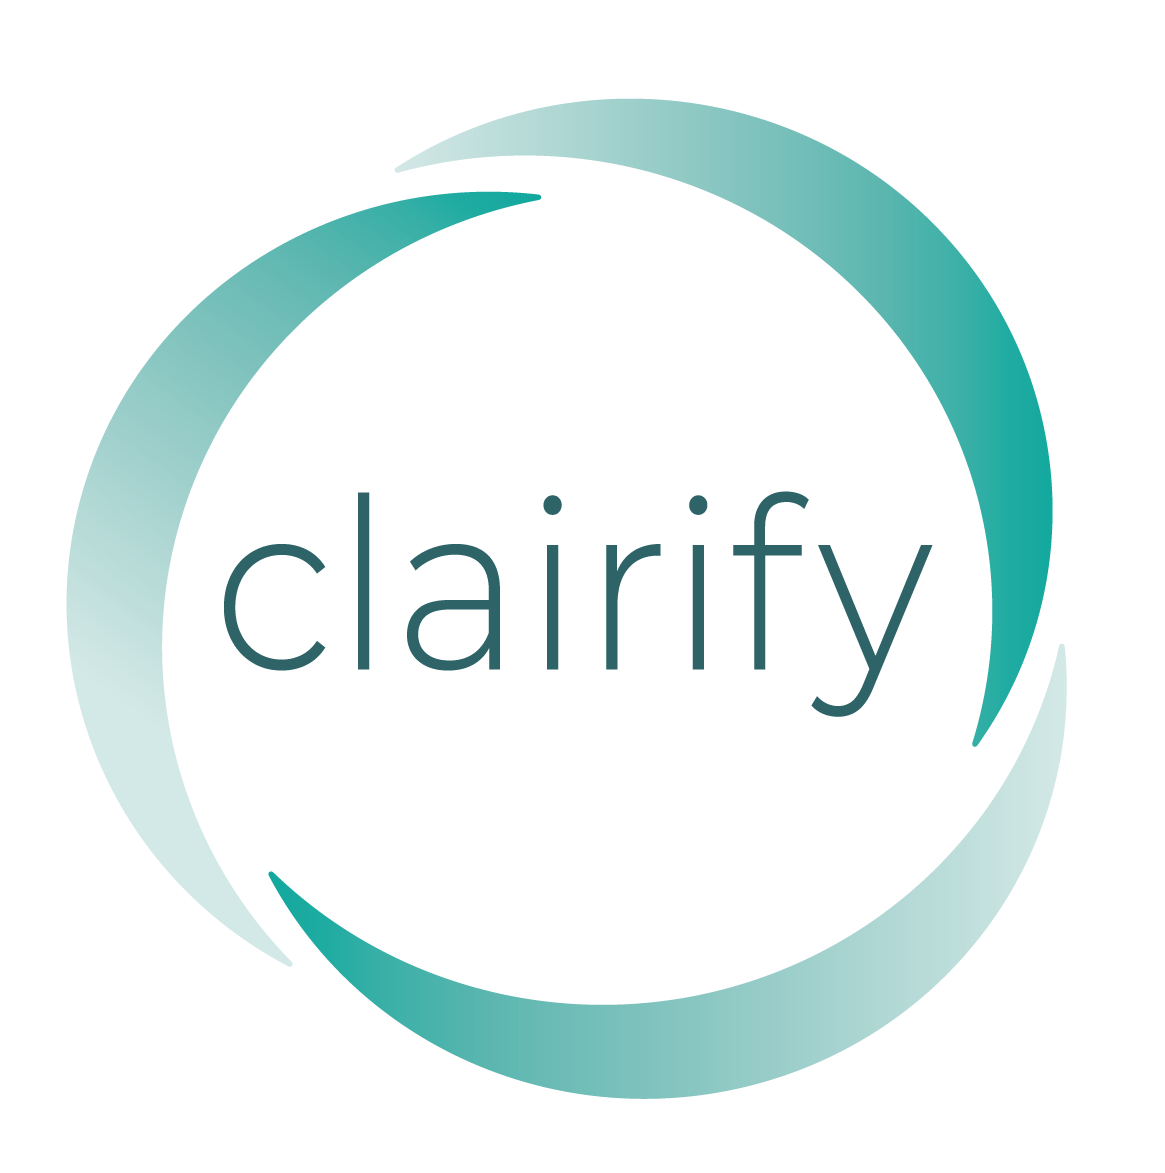 Clairify - logo transparent